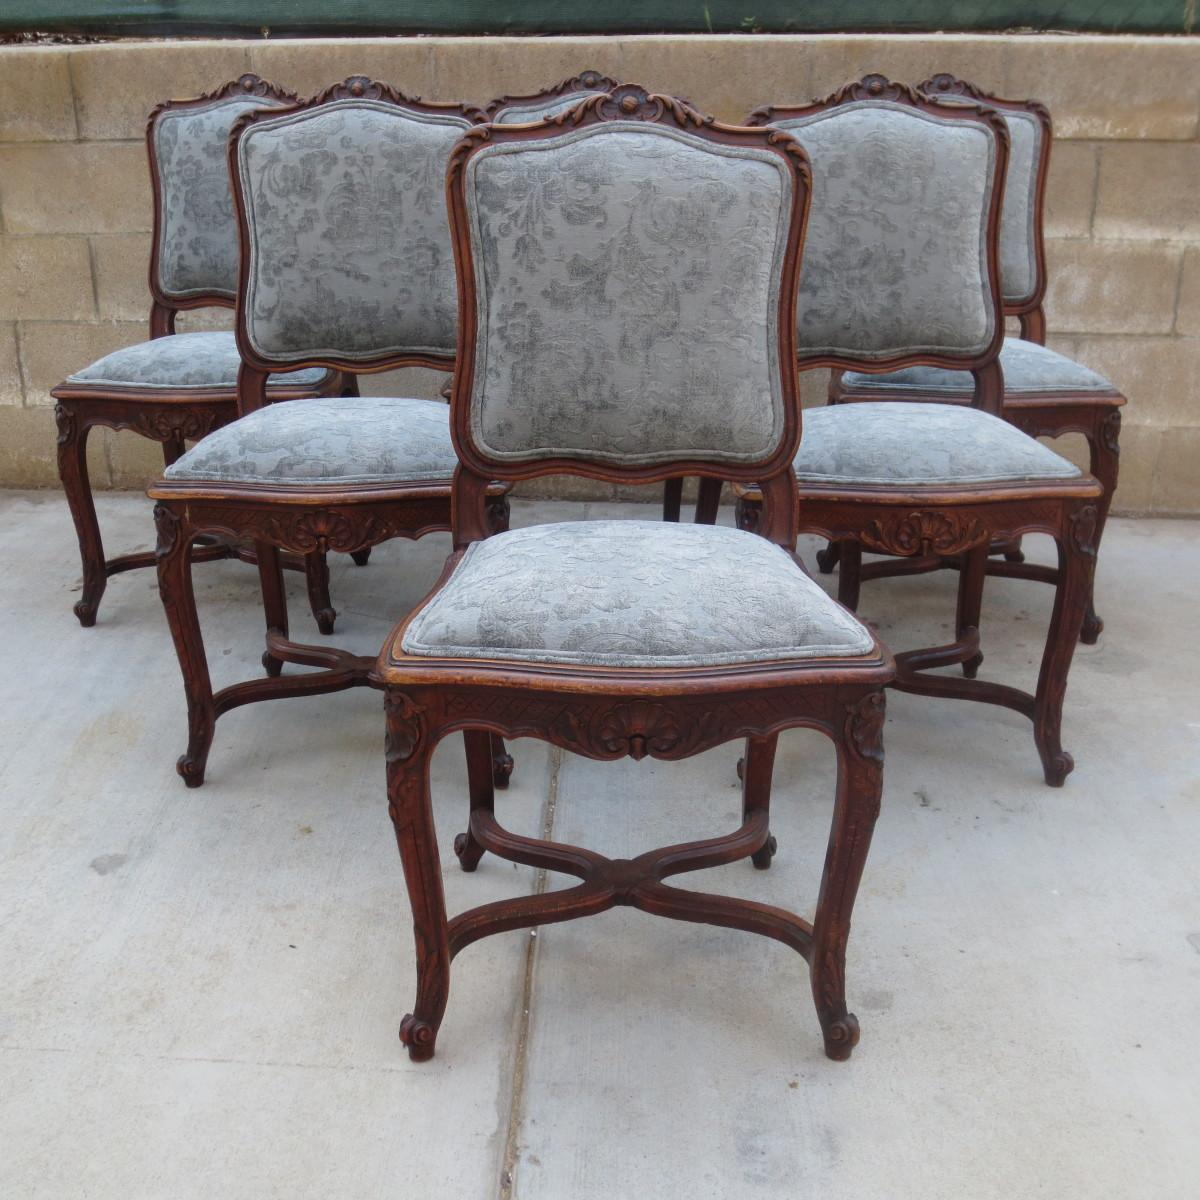 Antique Chairs Furniture